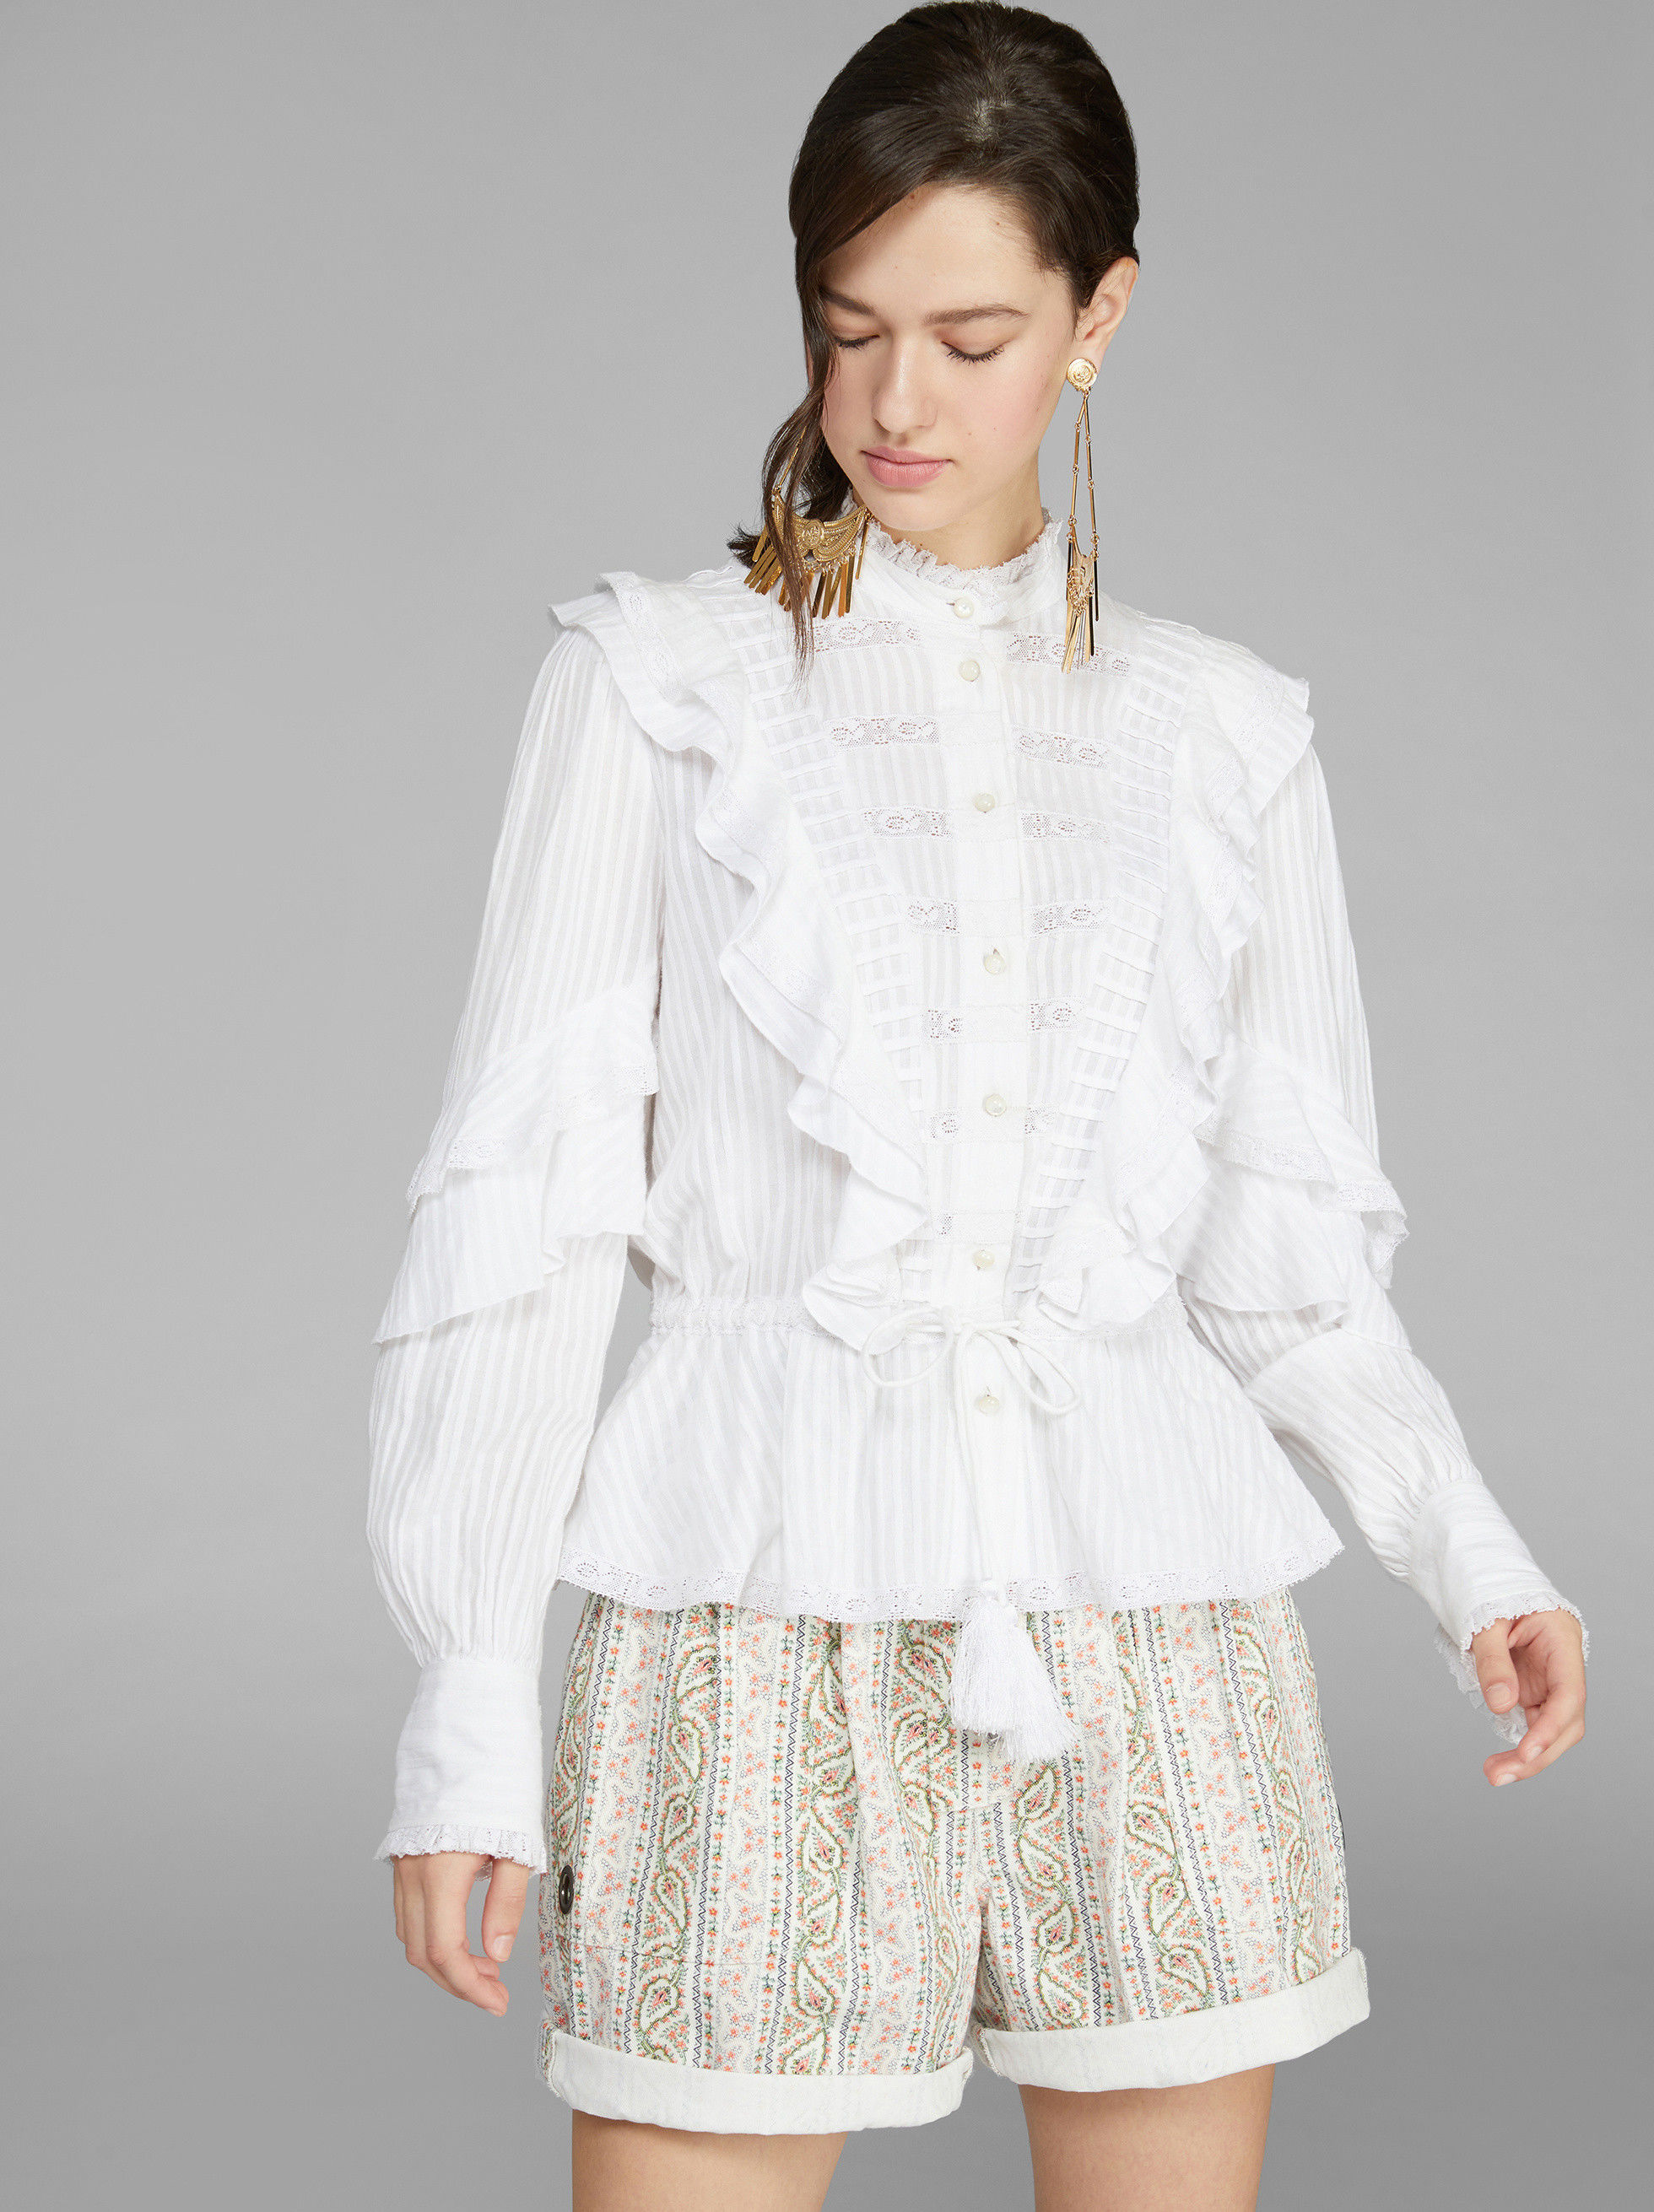 SHIRT IN LACE WITH DOTS AND RUCHES